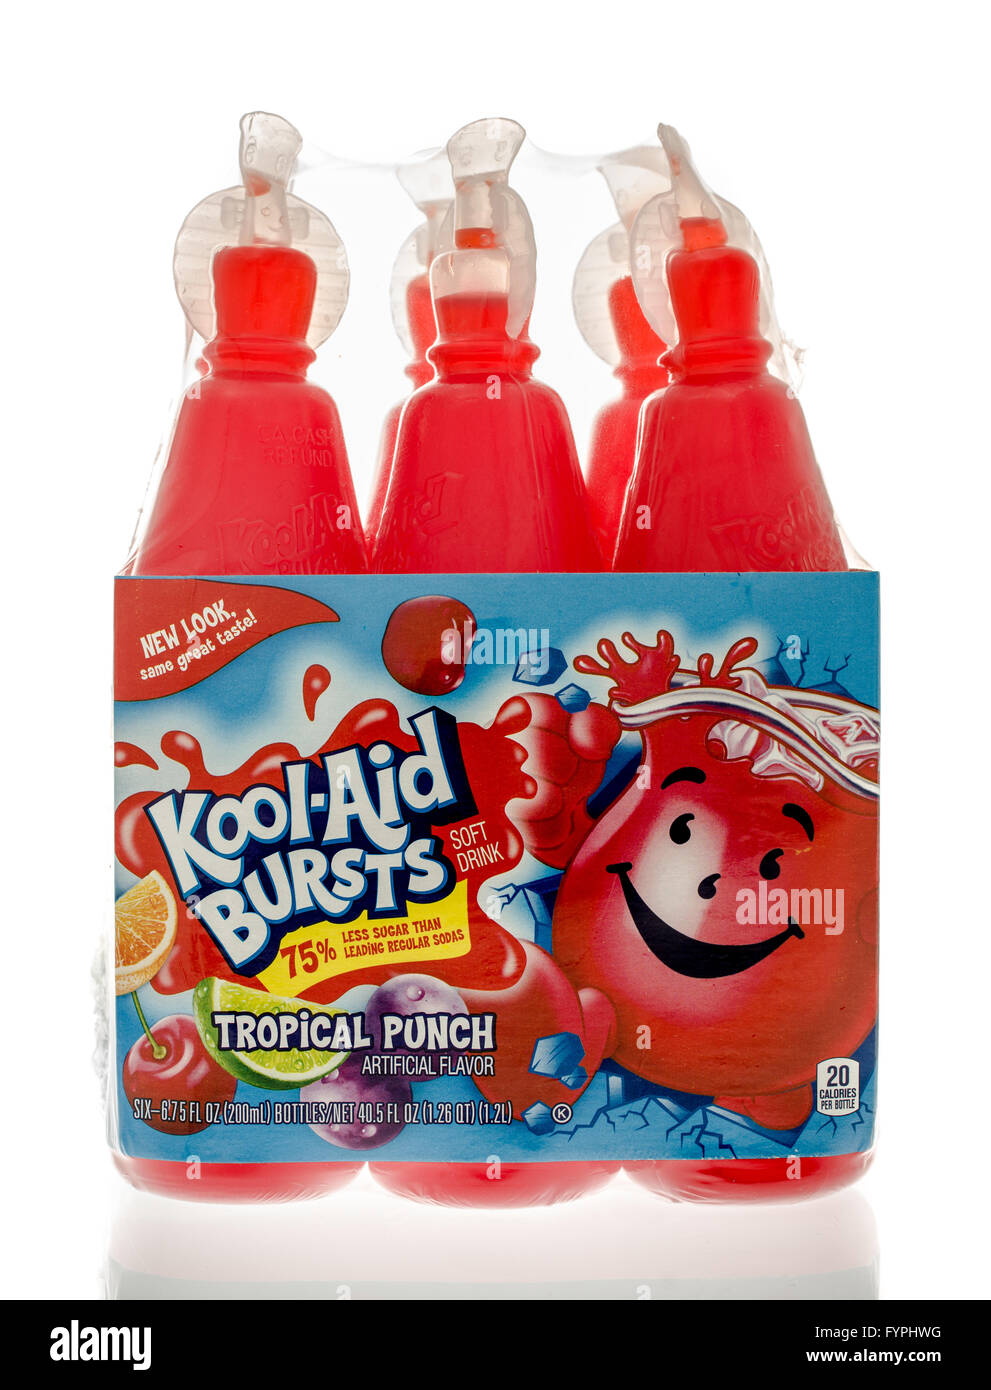 Winneconne, WI - 19 Feb 2016: Bottles of Kool-Aid bursts in tropical punch flavor. - Stock Image